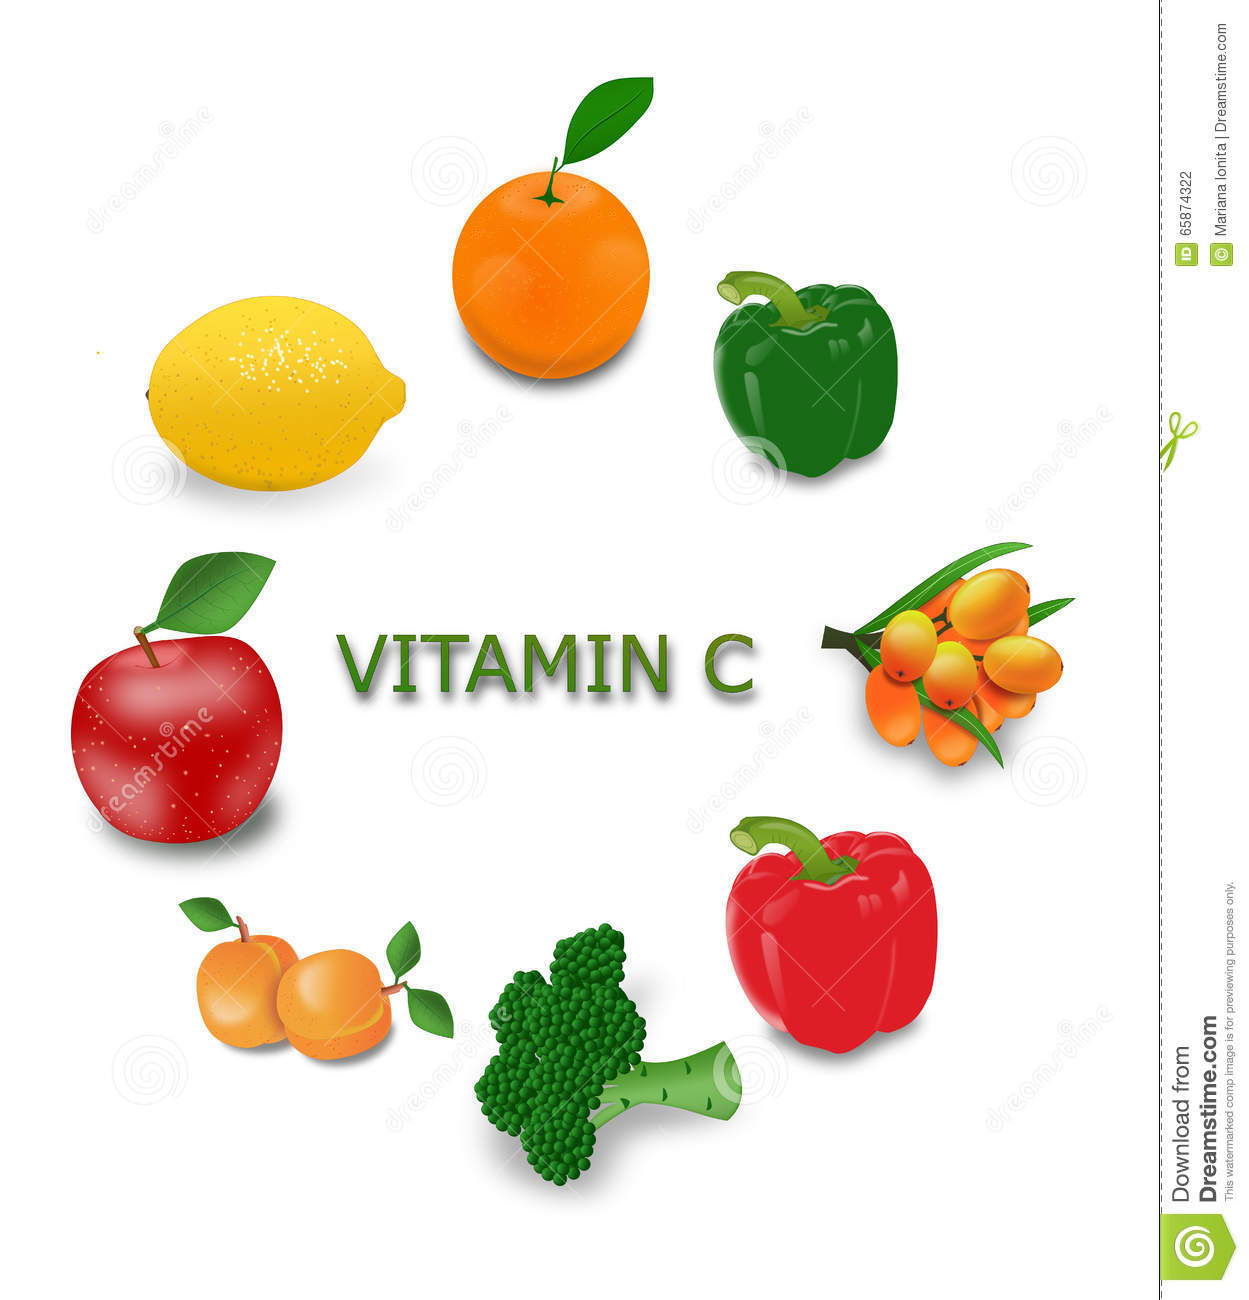 stock photography vitamin c sources image 65874322